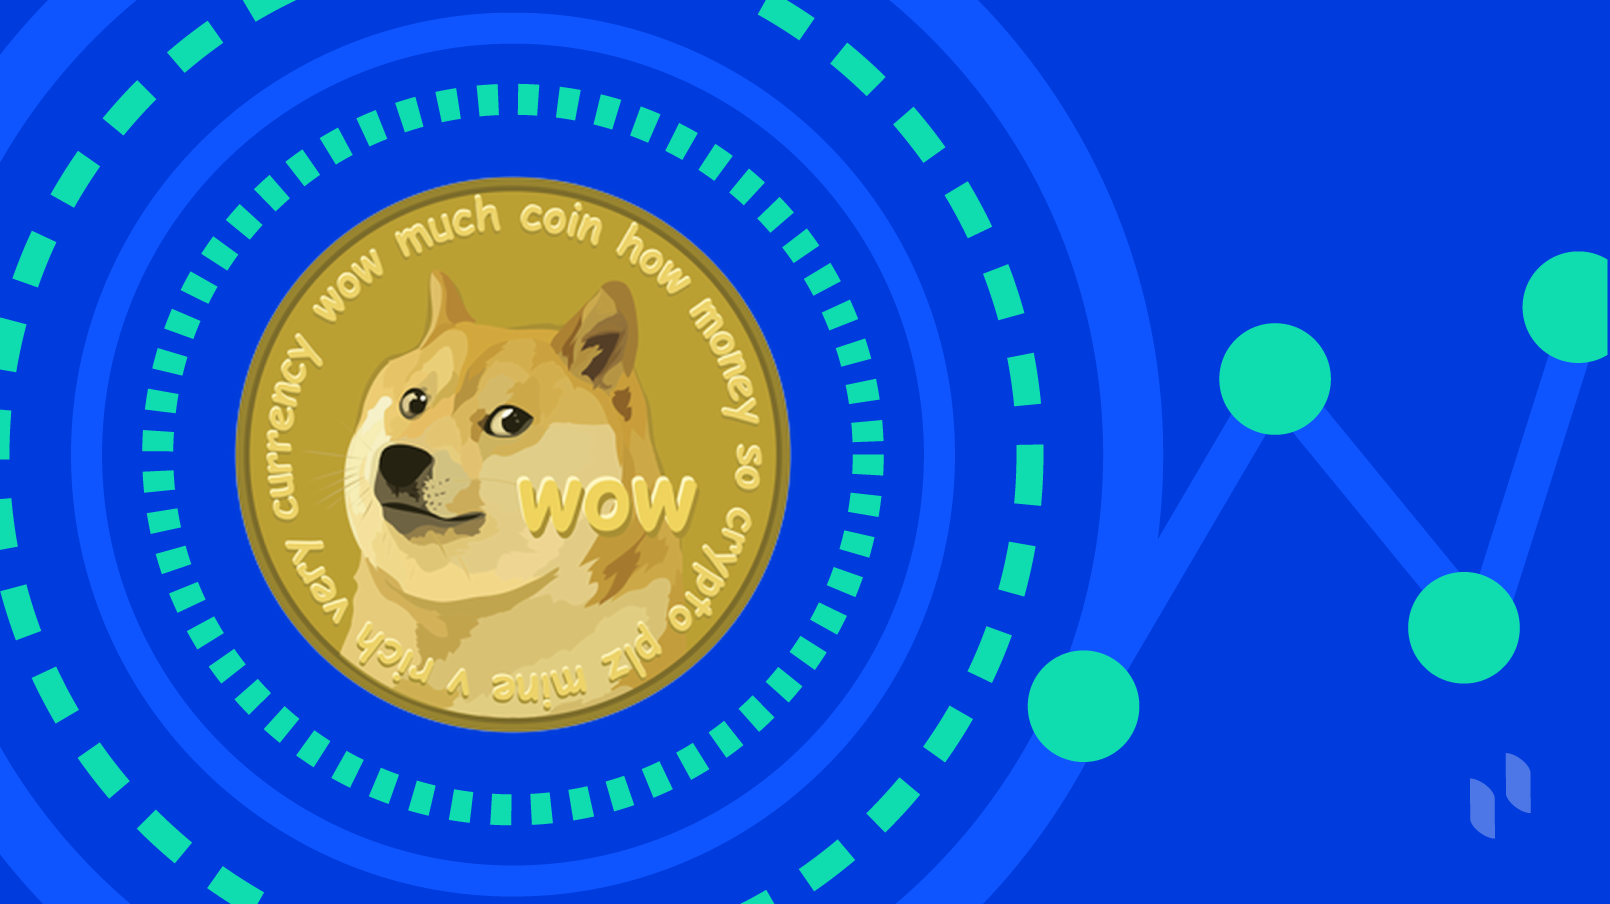 Dogecoin Founder Proposes Ethereum Bridge And NFT Compatibility As Ways To Bolster DOGE Network